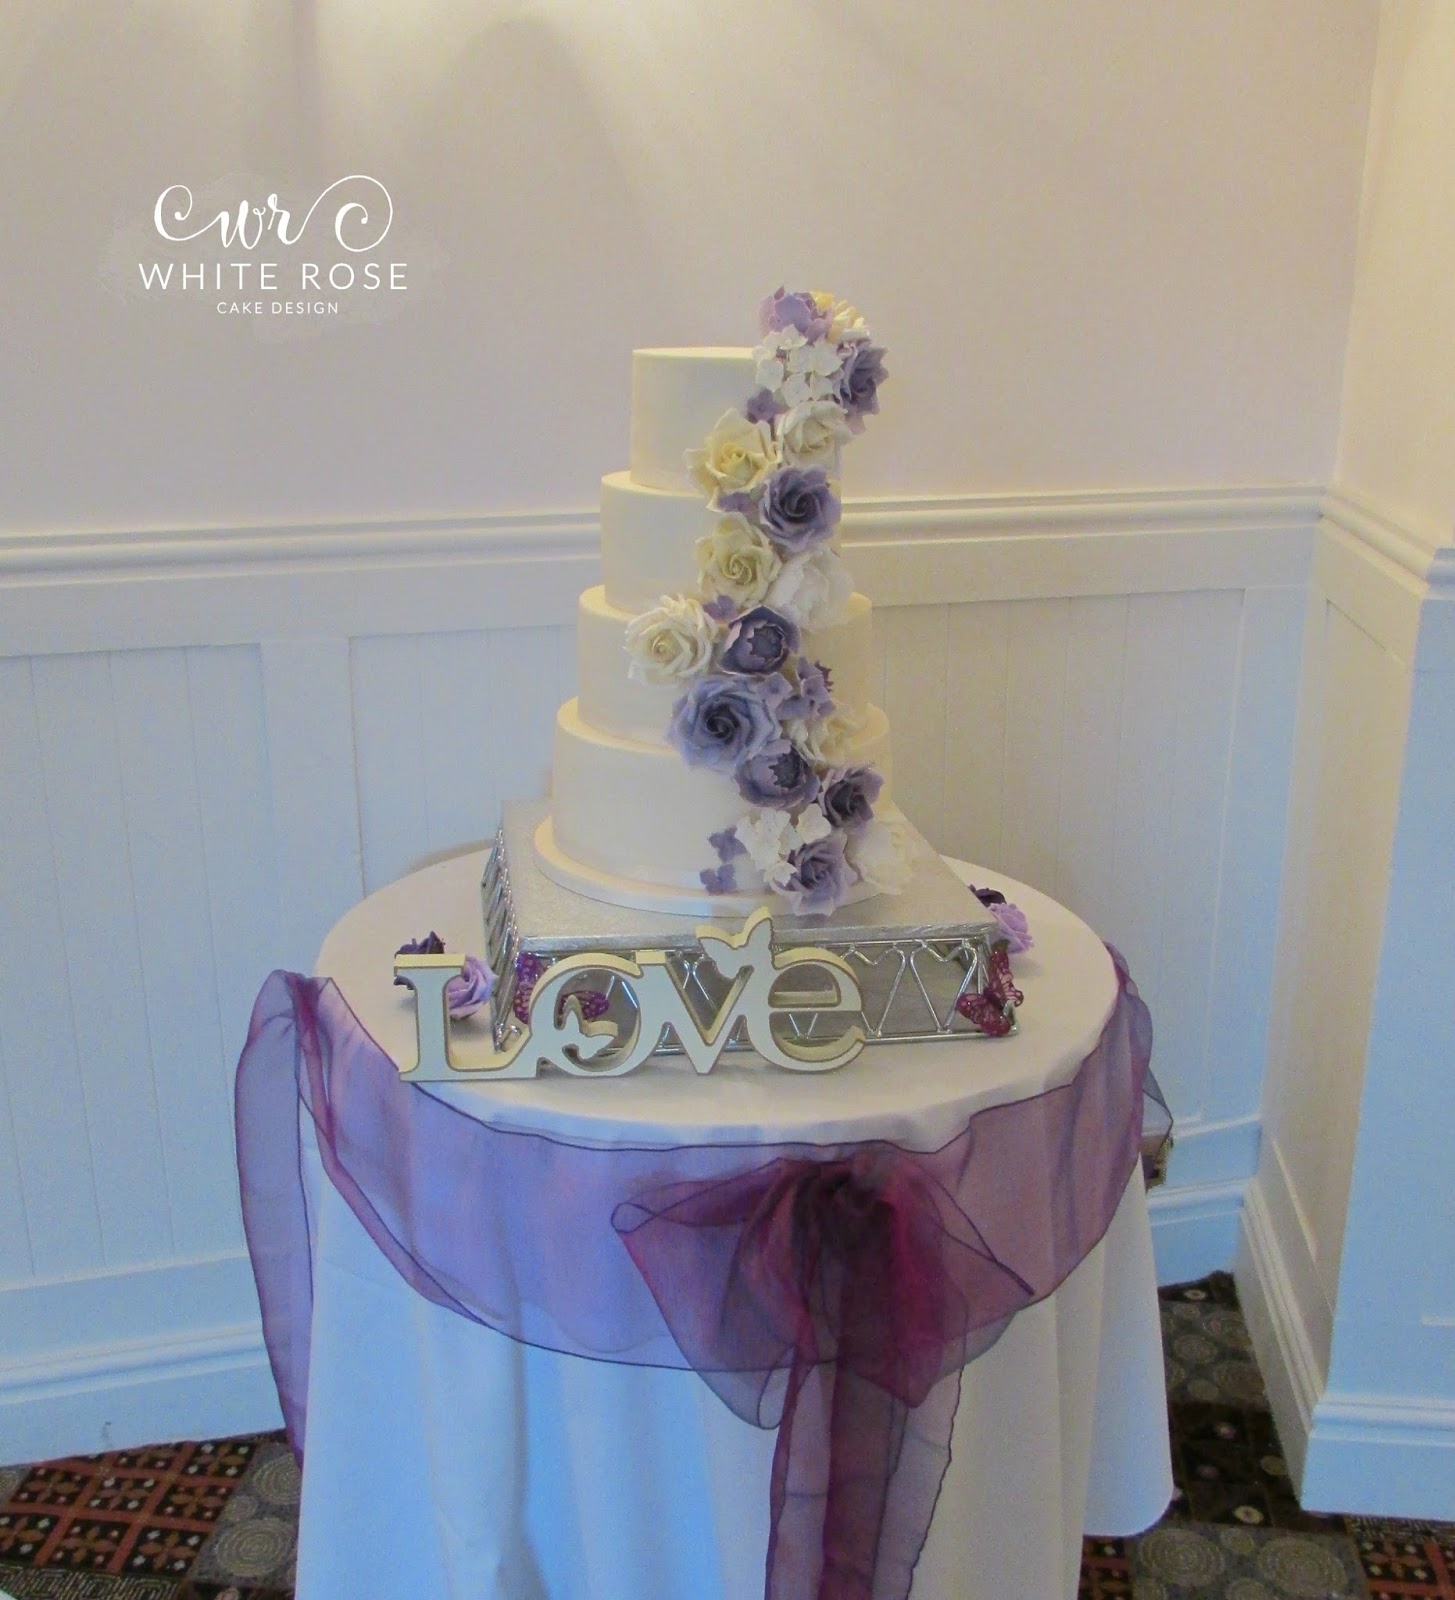 Lucy Had Asked For A Cascade Of Sugar Flowers Tumbling Down Her Cake In Shades Purple Lilac Whites And Ivories So This Is What We Came Up With